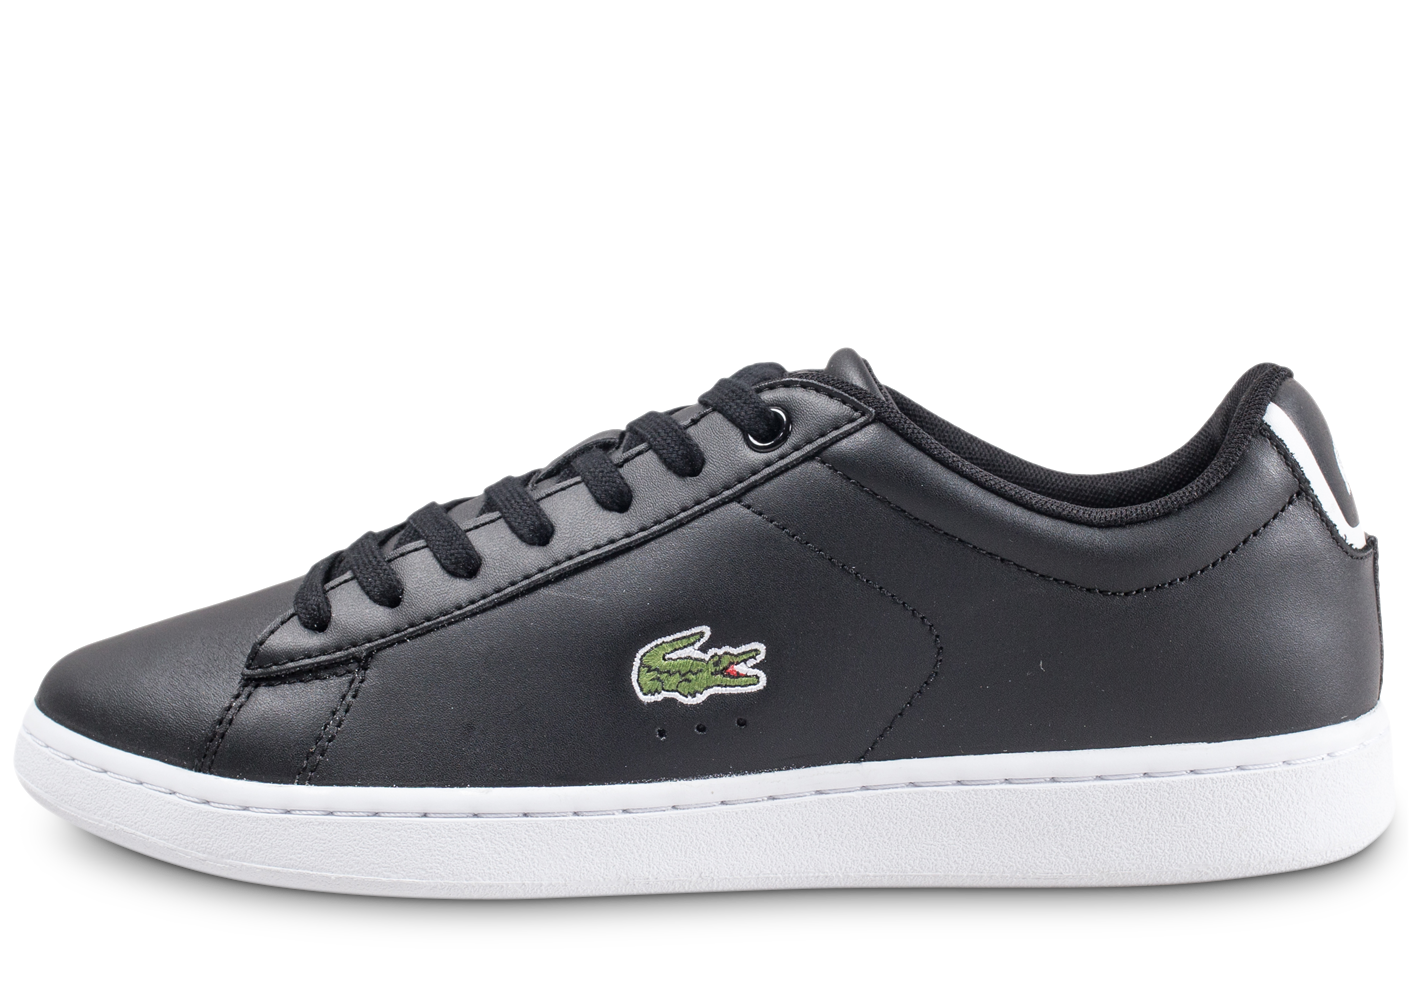 6f26ec8b26 Chausport · Chaussures Homme Sandalesss · Lacoste Homme Carnaby Evo Noires  Baskets